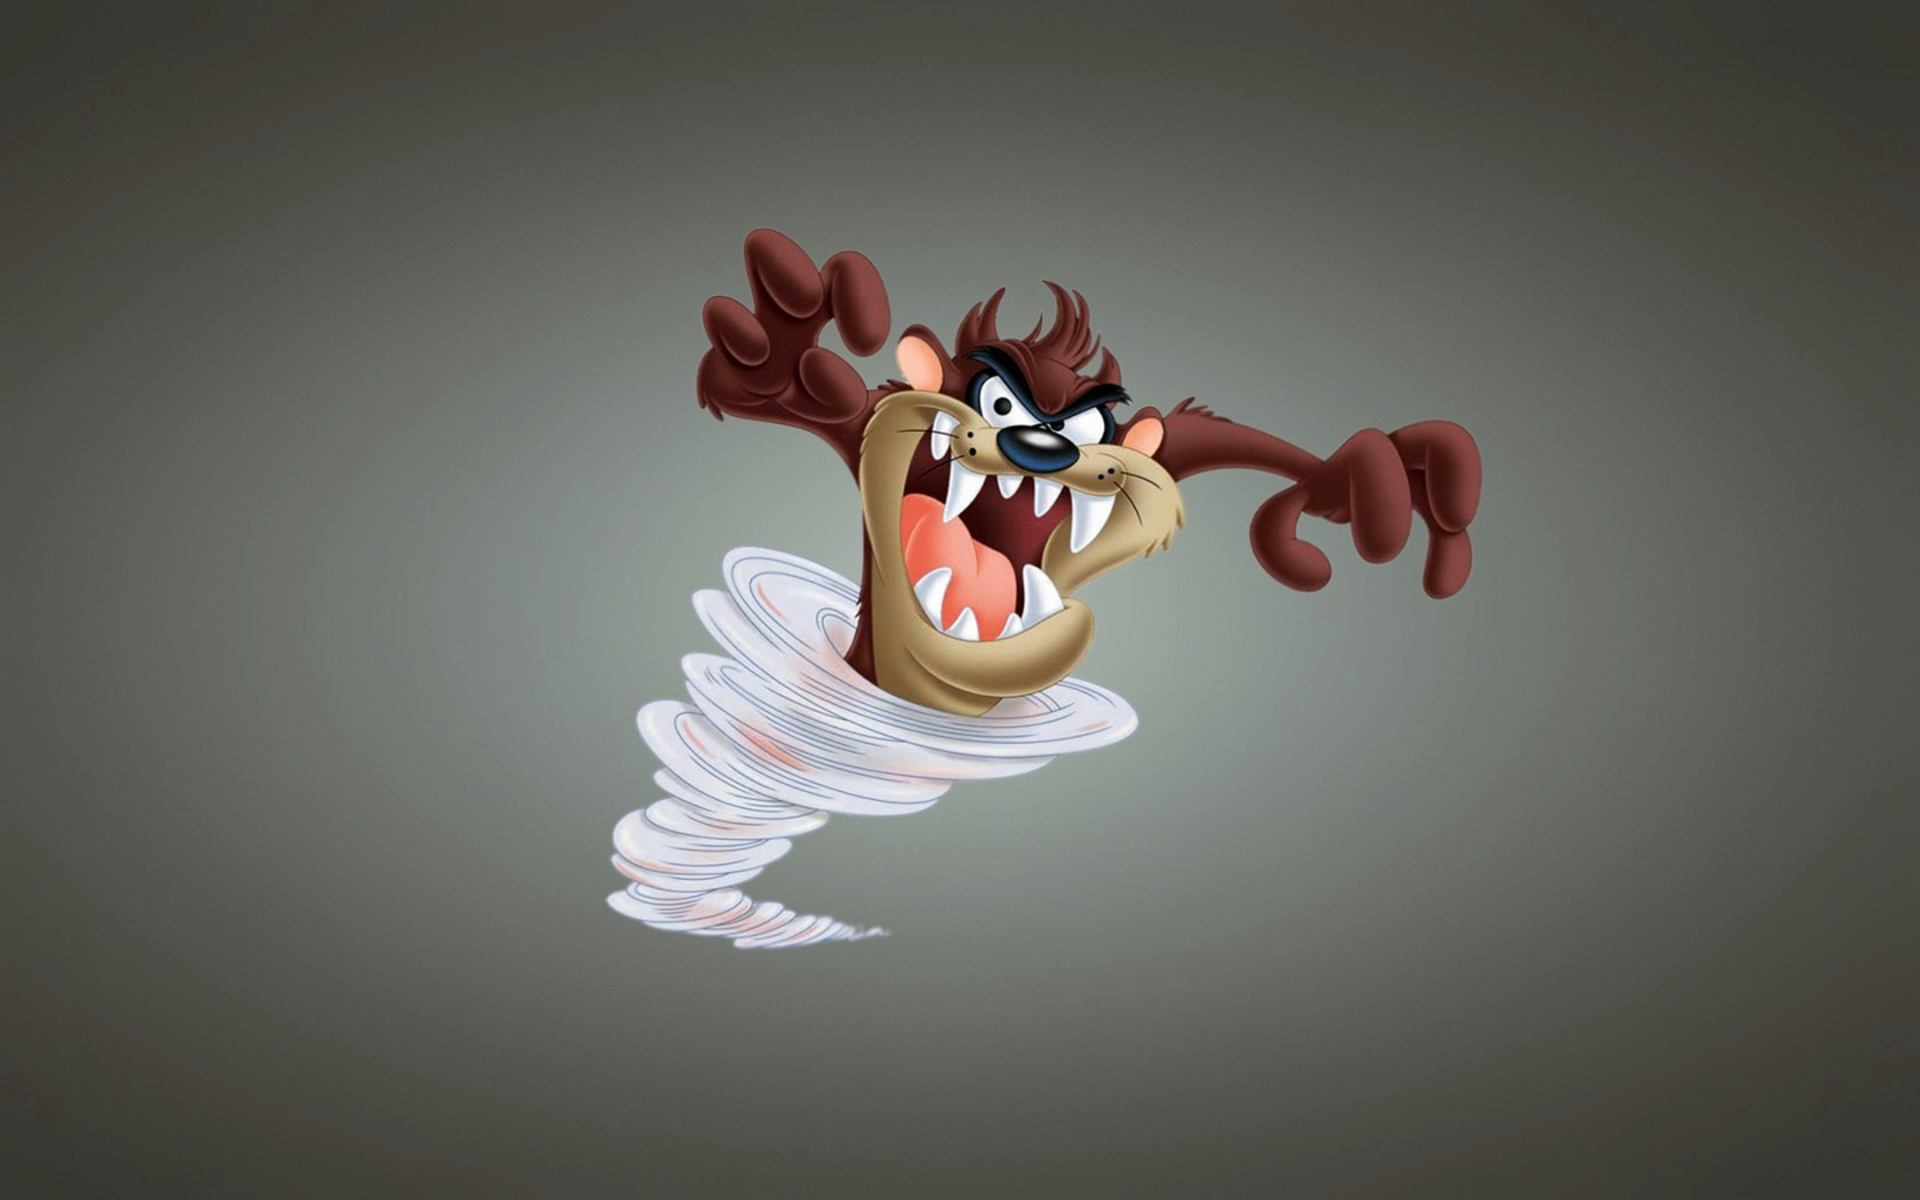 43 Tasmanian Devil Cartoon Wallpaper On Wallpapersafari